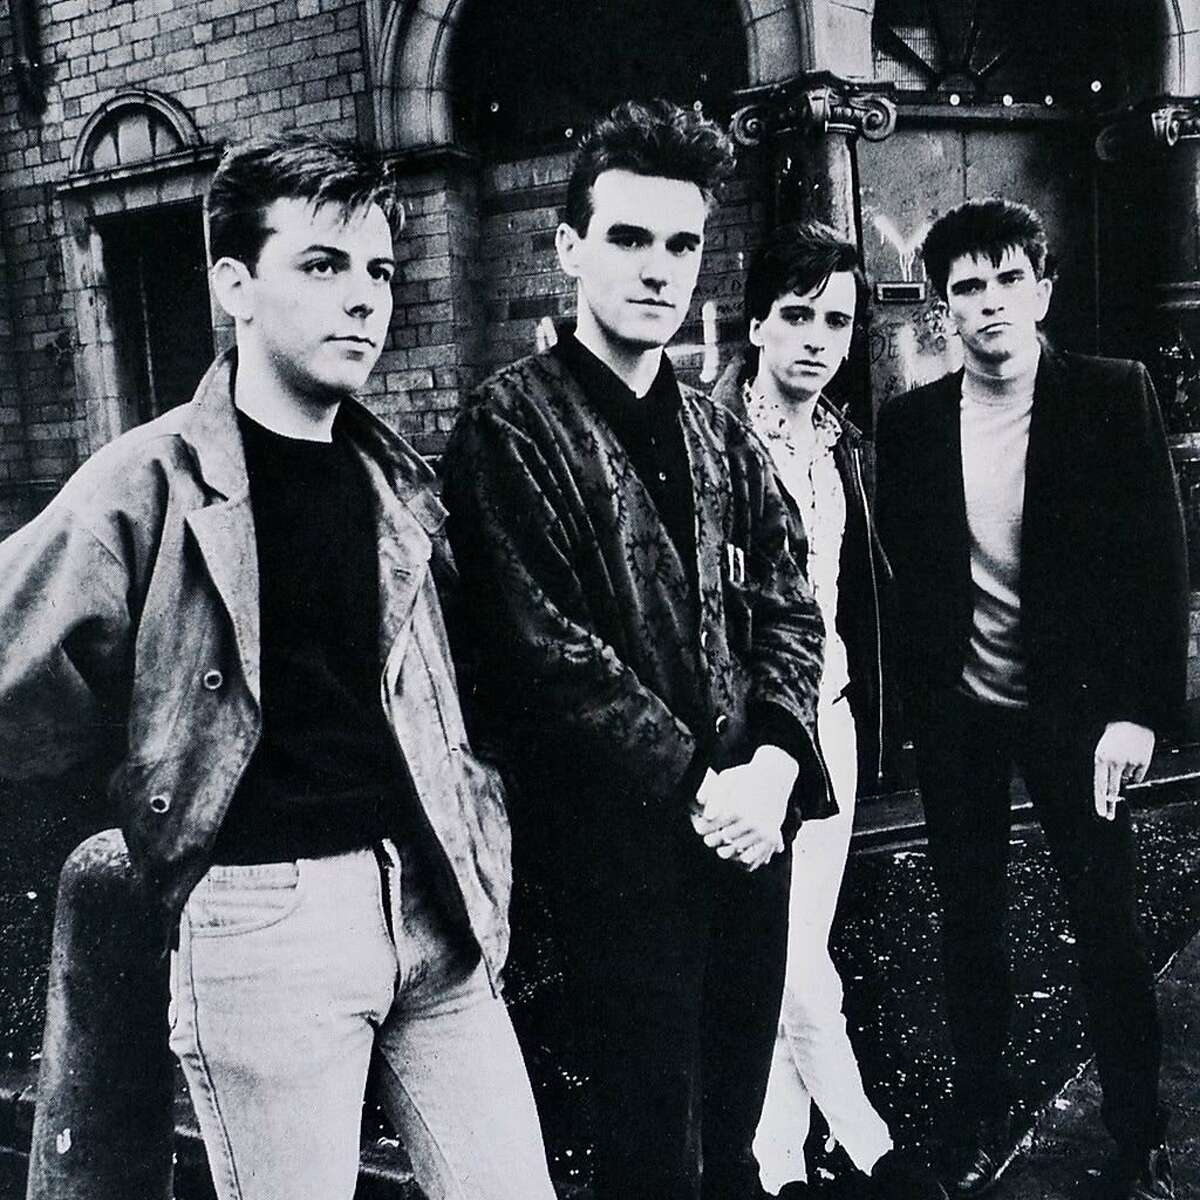 The Smiths: (from left) bassist Andy Rourke, singer Morrissey, guitarist Johnny Marr, drummer Mike Joyce.